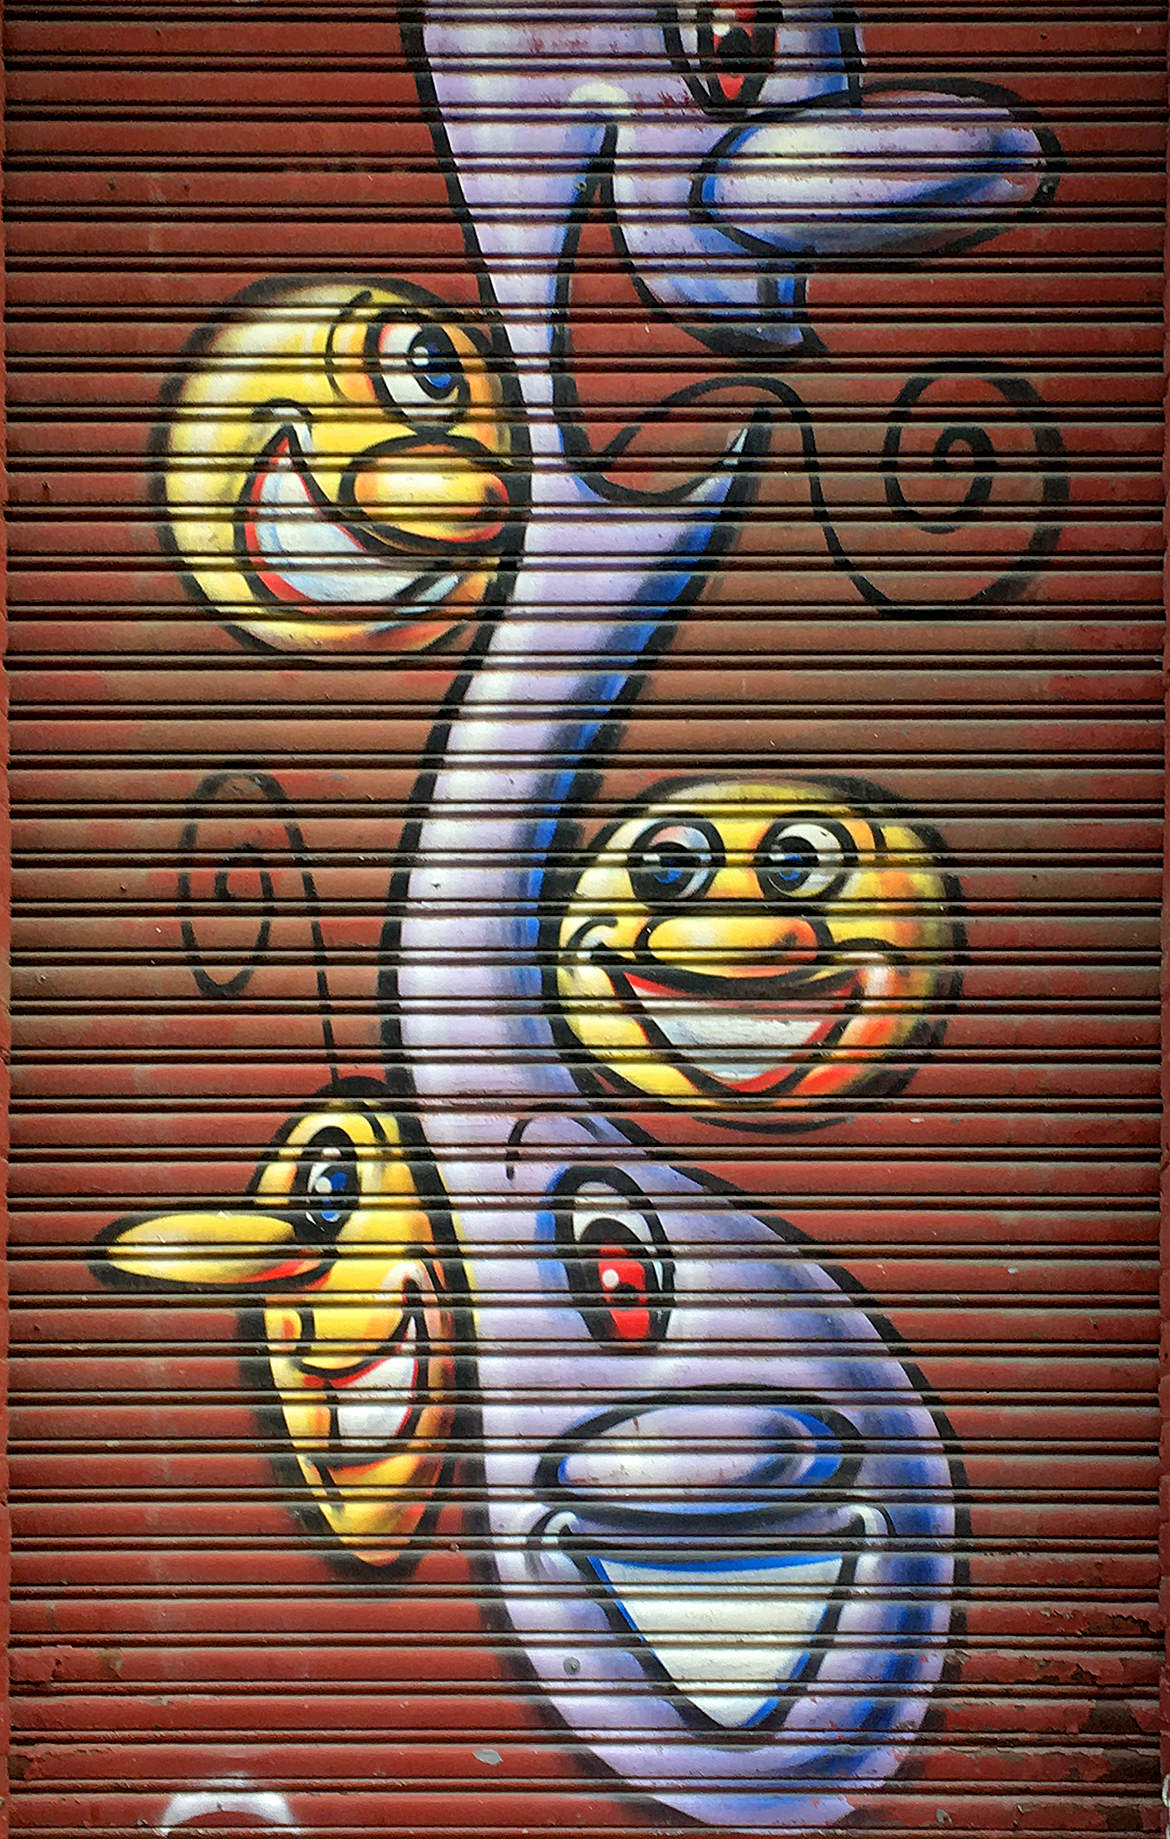 grafitti spray paint cartoon faces smiling